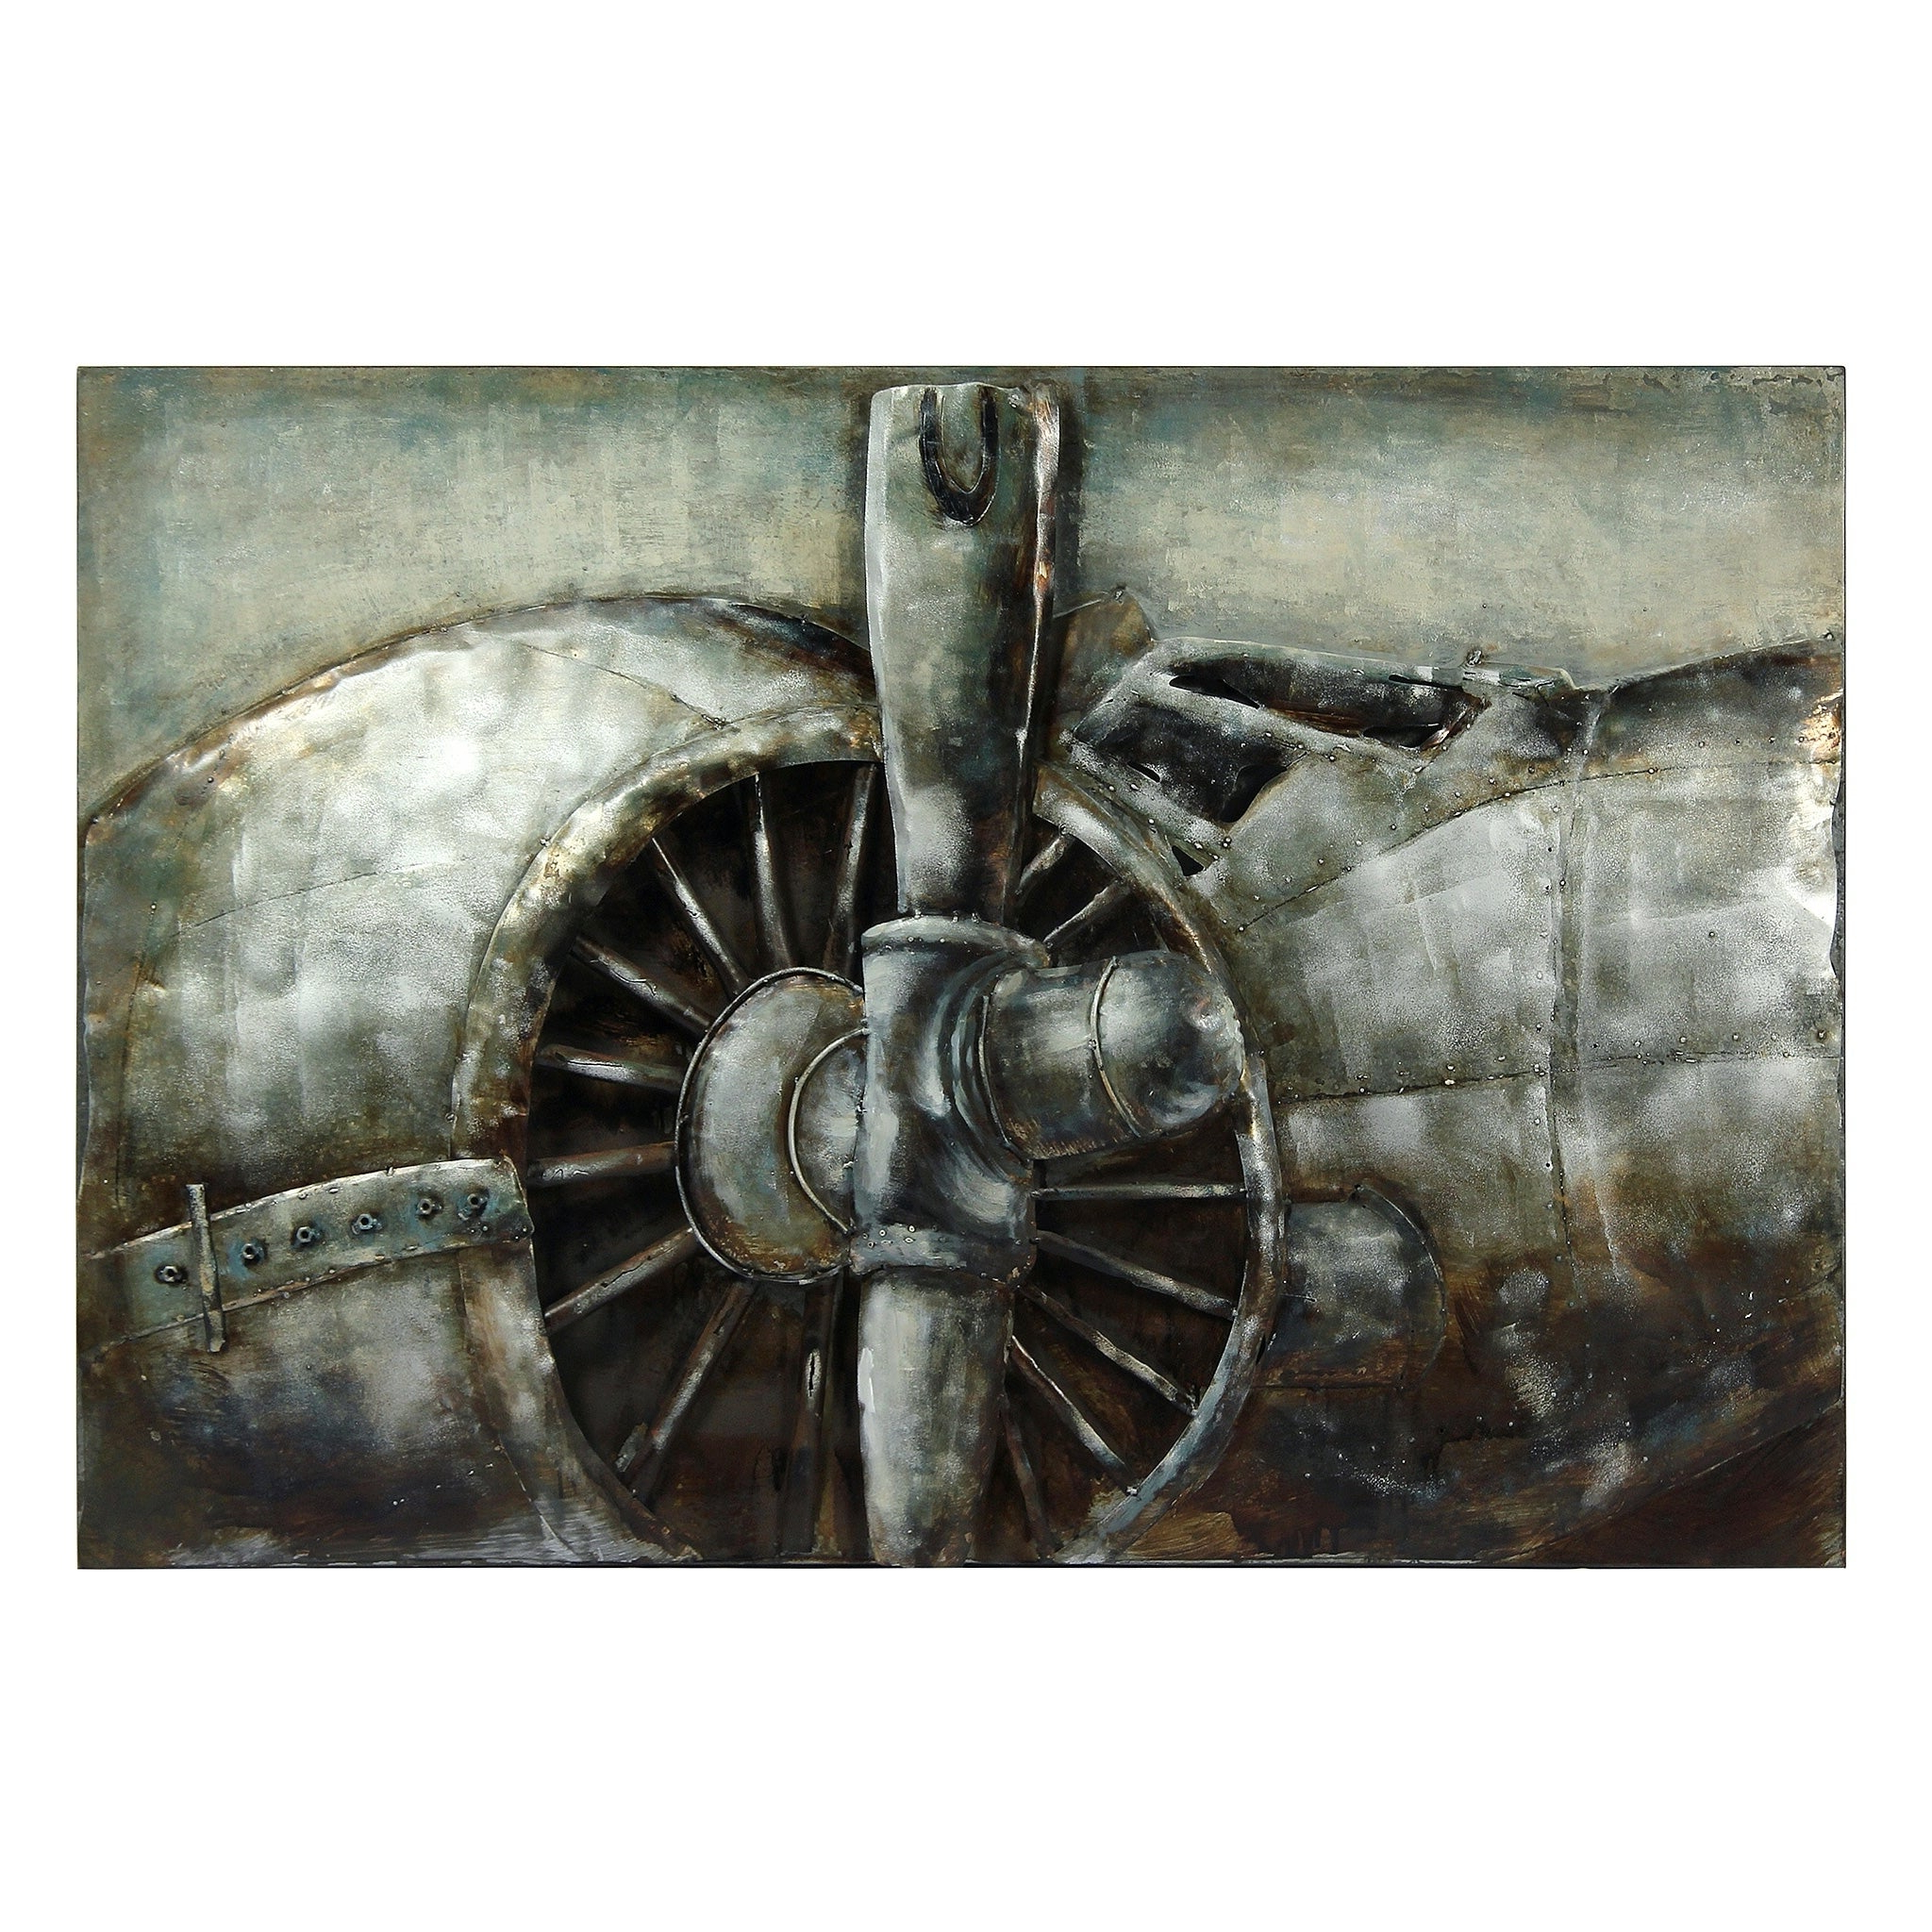 "Mixed Media Iron Hand Painted Dimensional Wall Decor Regarding Most Popular Flyaway"" Mixed Media Iron Hand Painted Dimensional Wall Décor (View 19 of 20)"